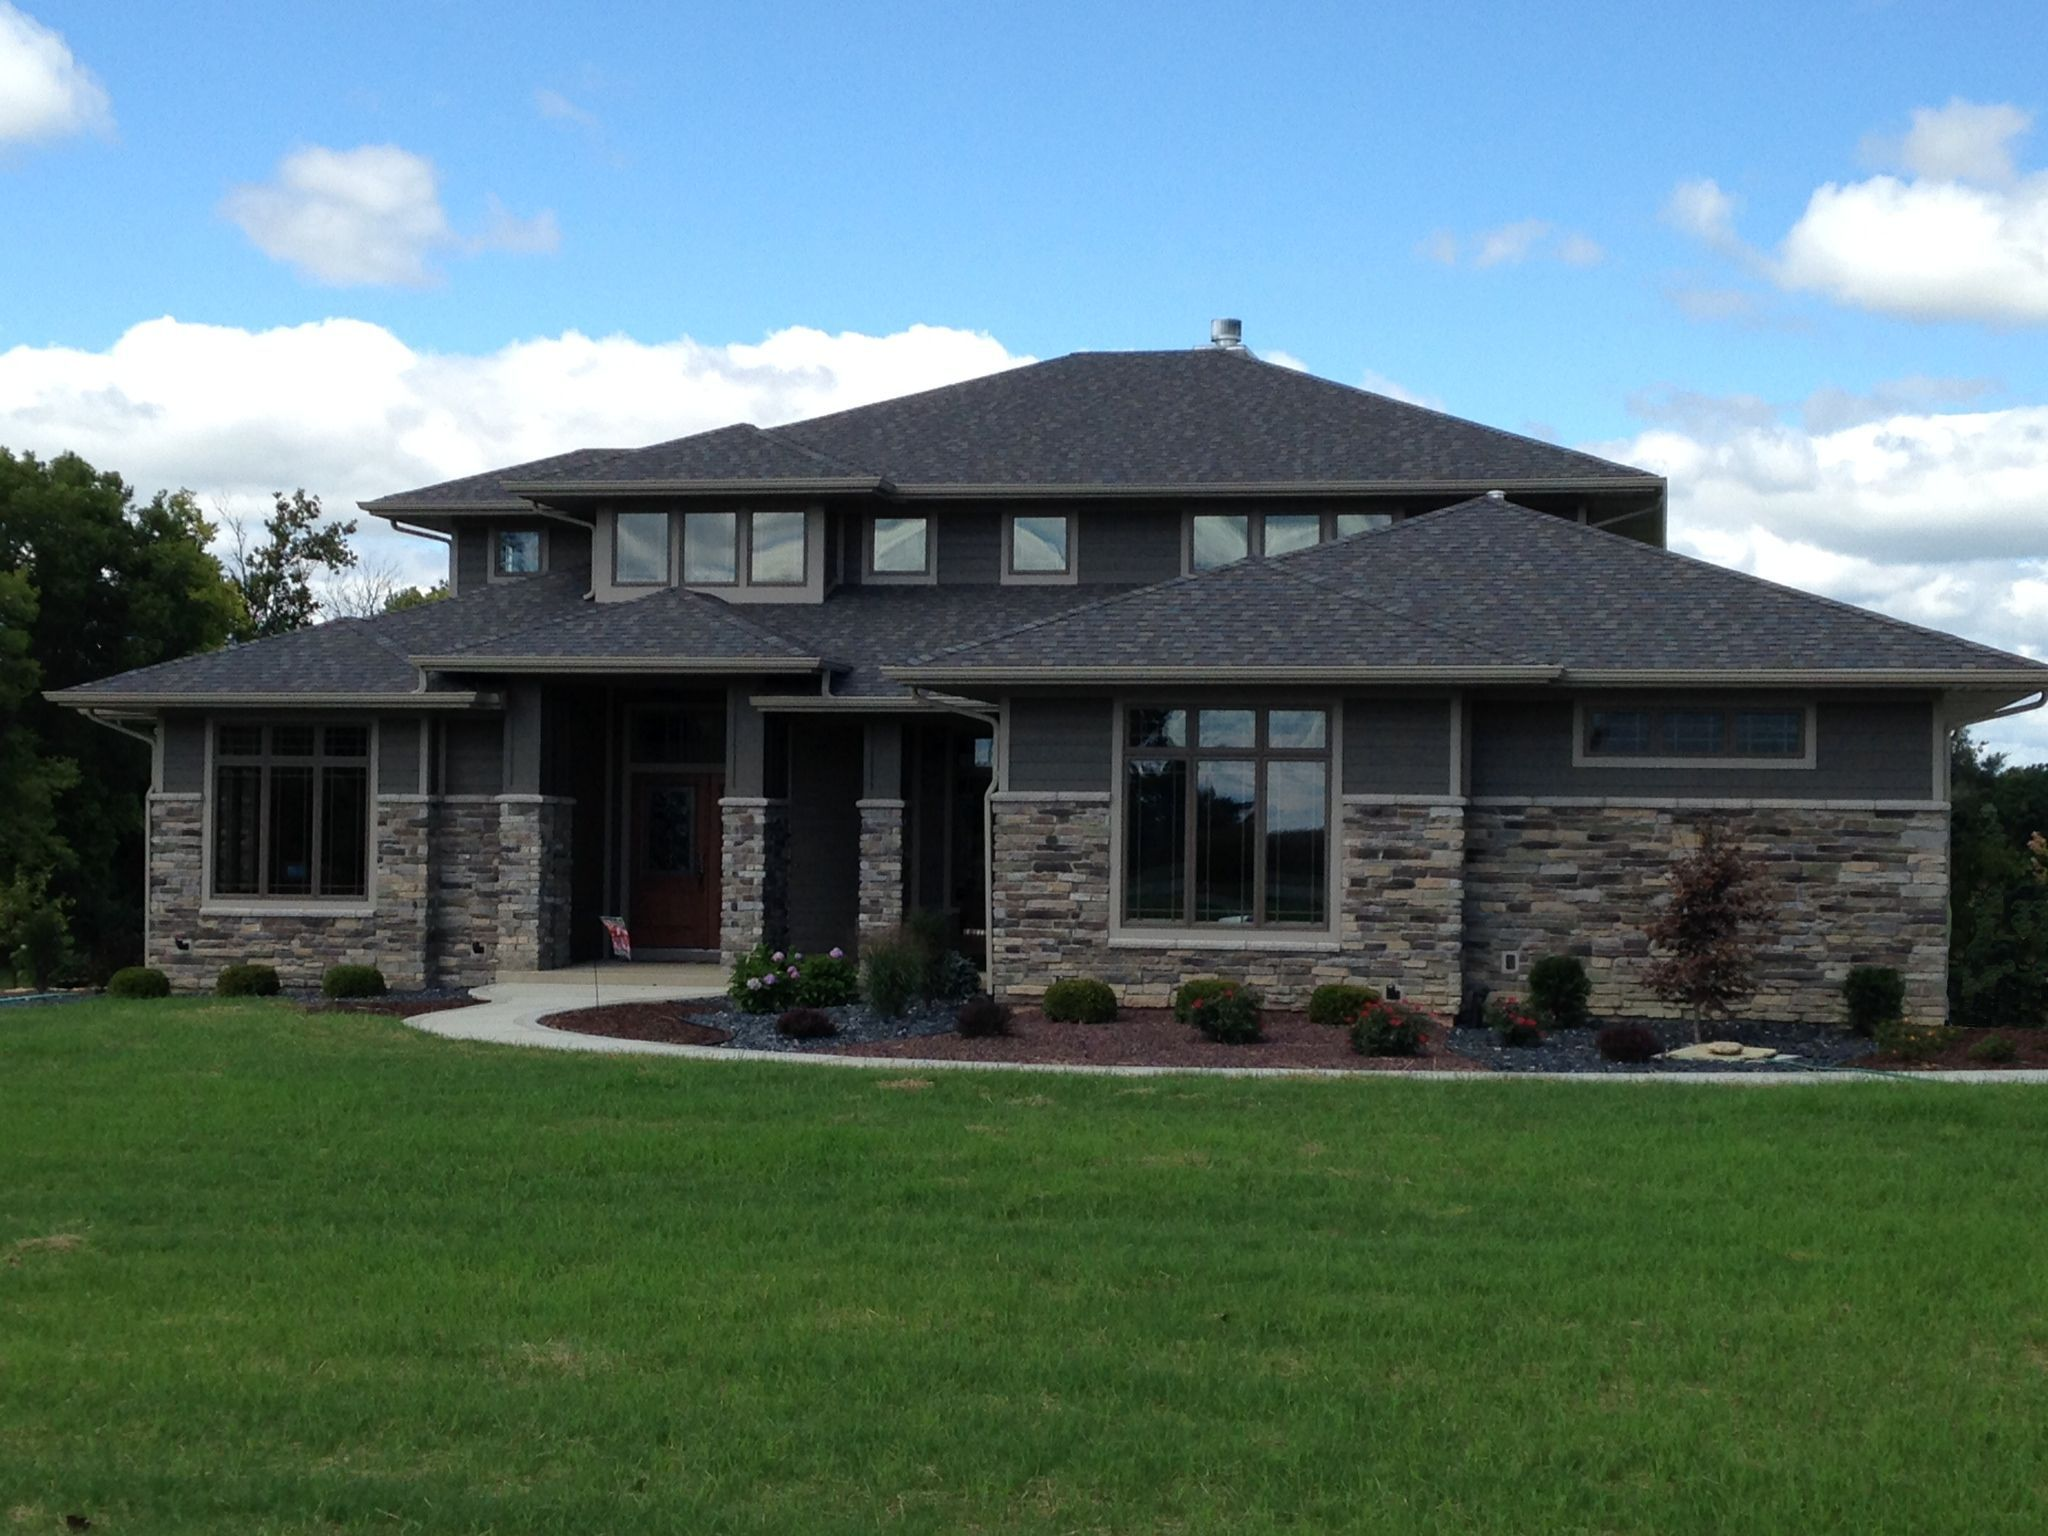 11 Awesome Modern Ranch Style Home Design Ideas ...